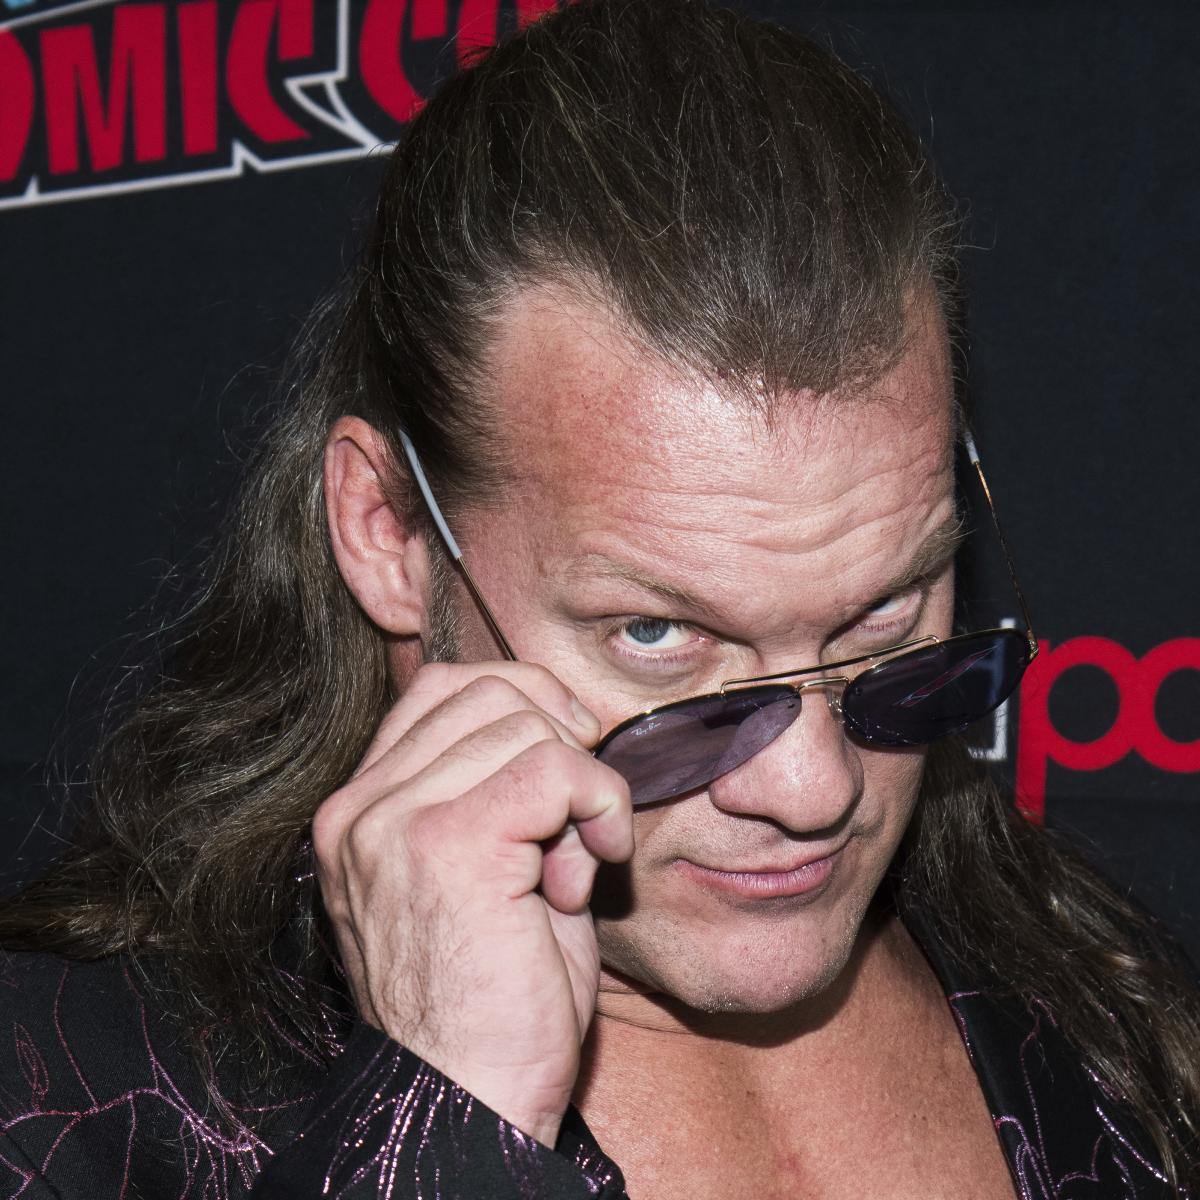 AEW Star Chris Jericho to Appear on WWE's Broken Skull Sessions with Stone Cold